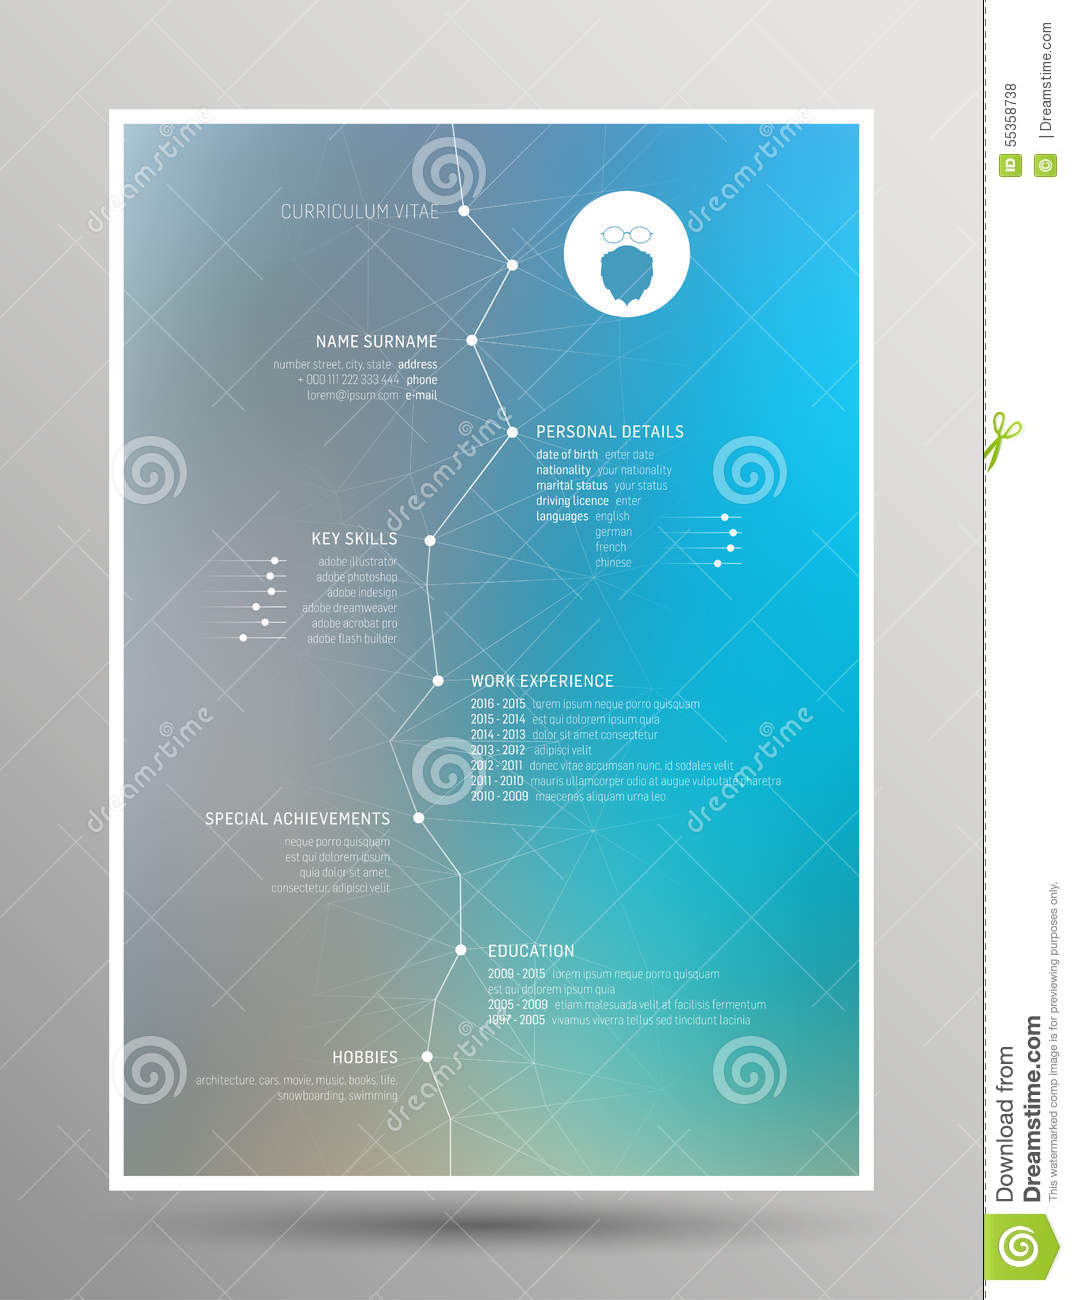 resume background image modern curriculum vitae resume